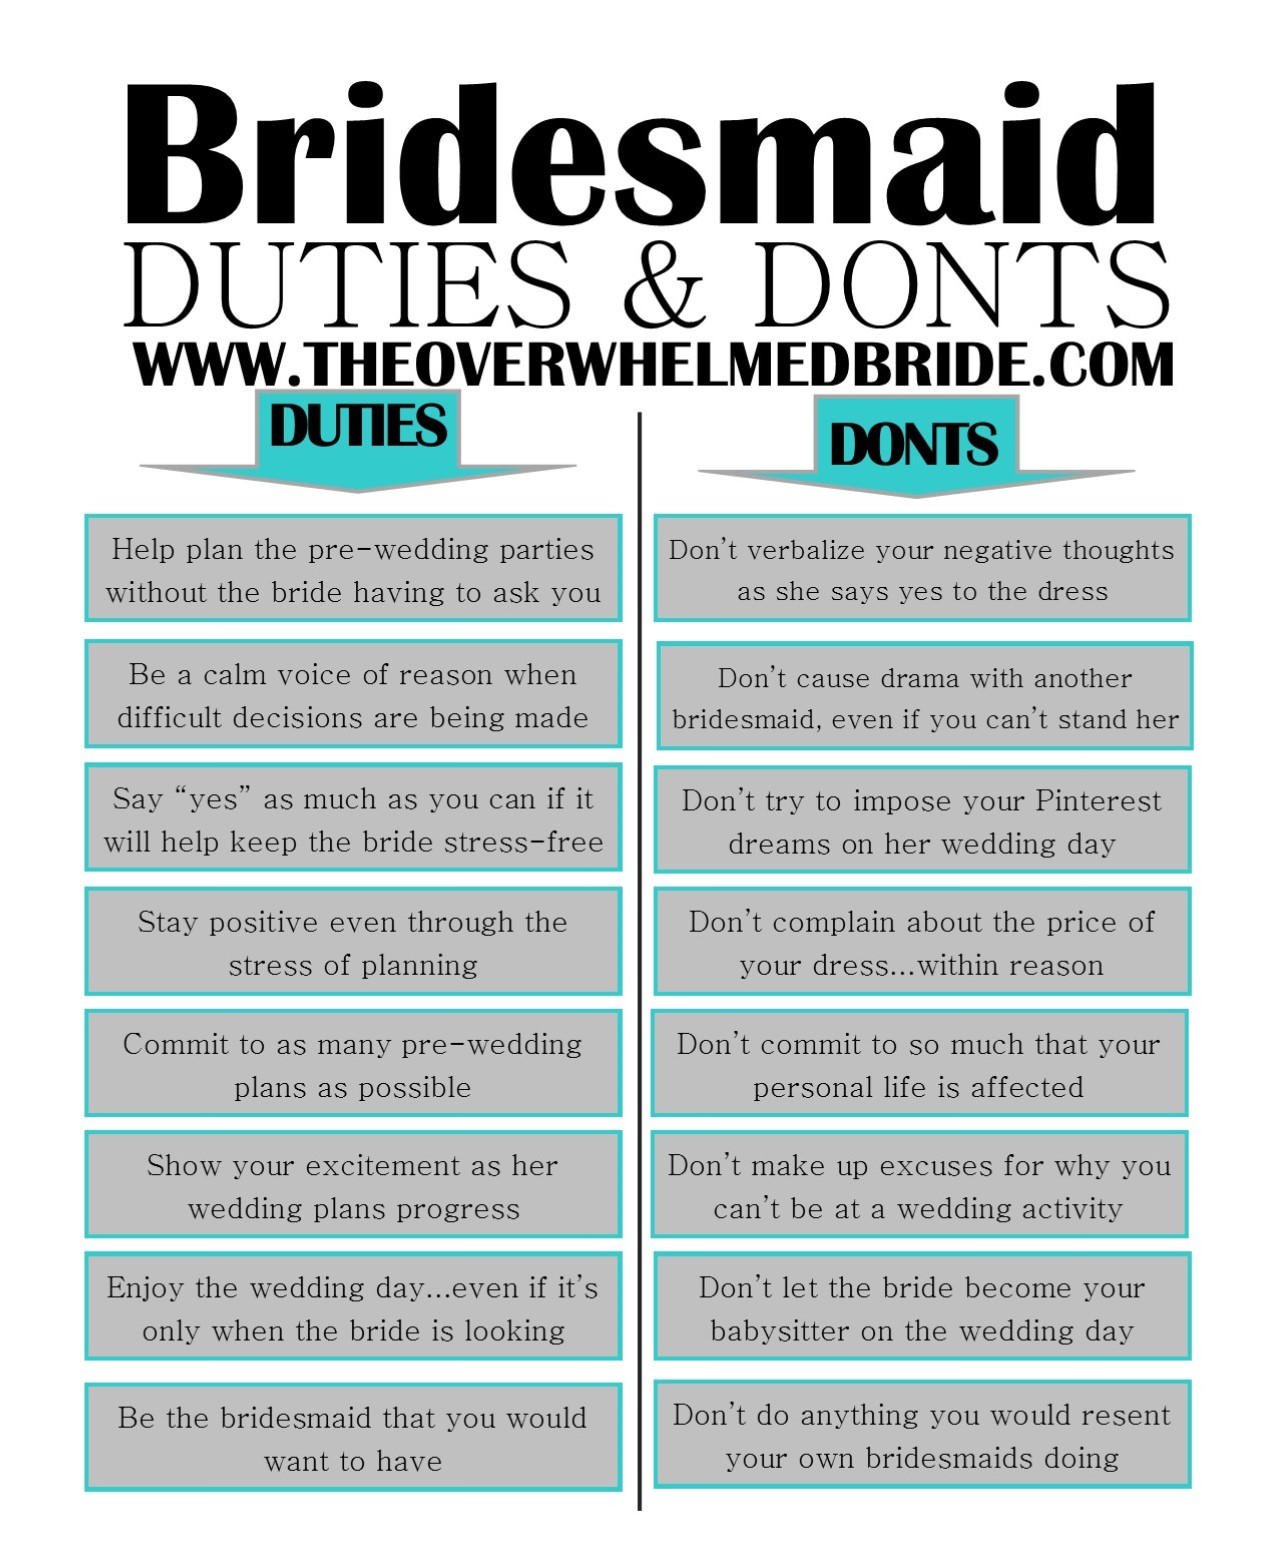 bridesmaid duties and donts by the overwhelmed bride